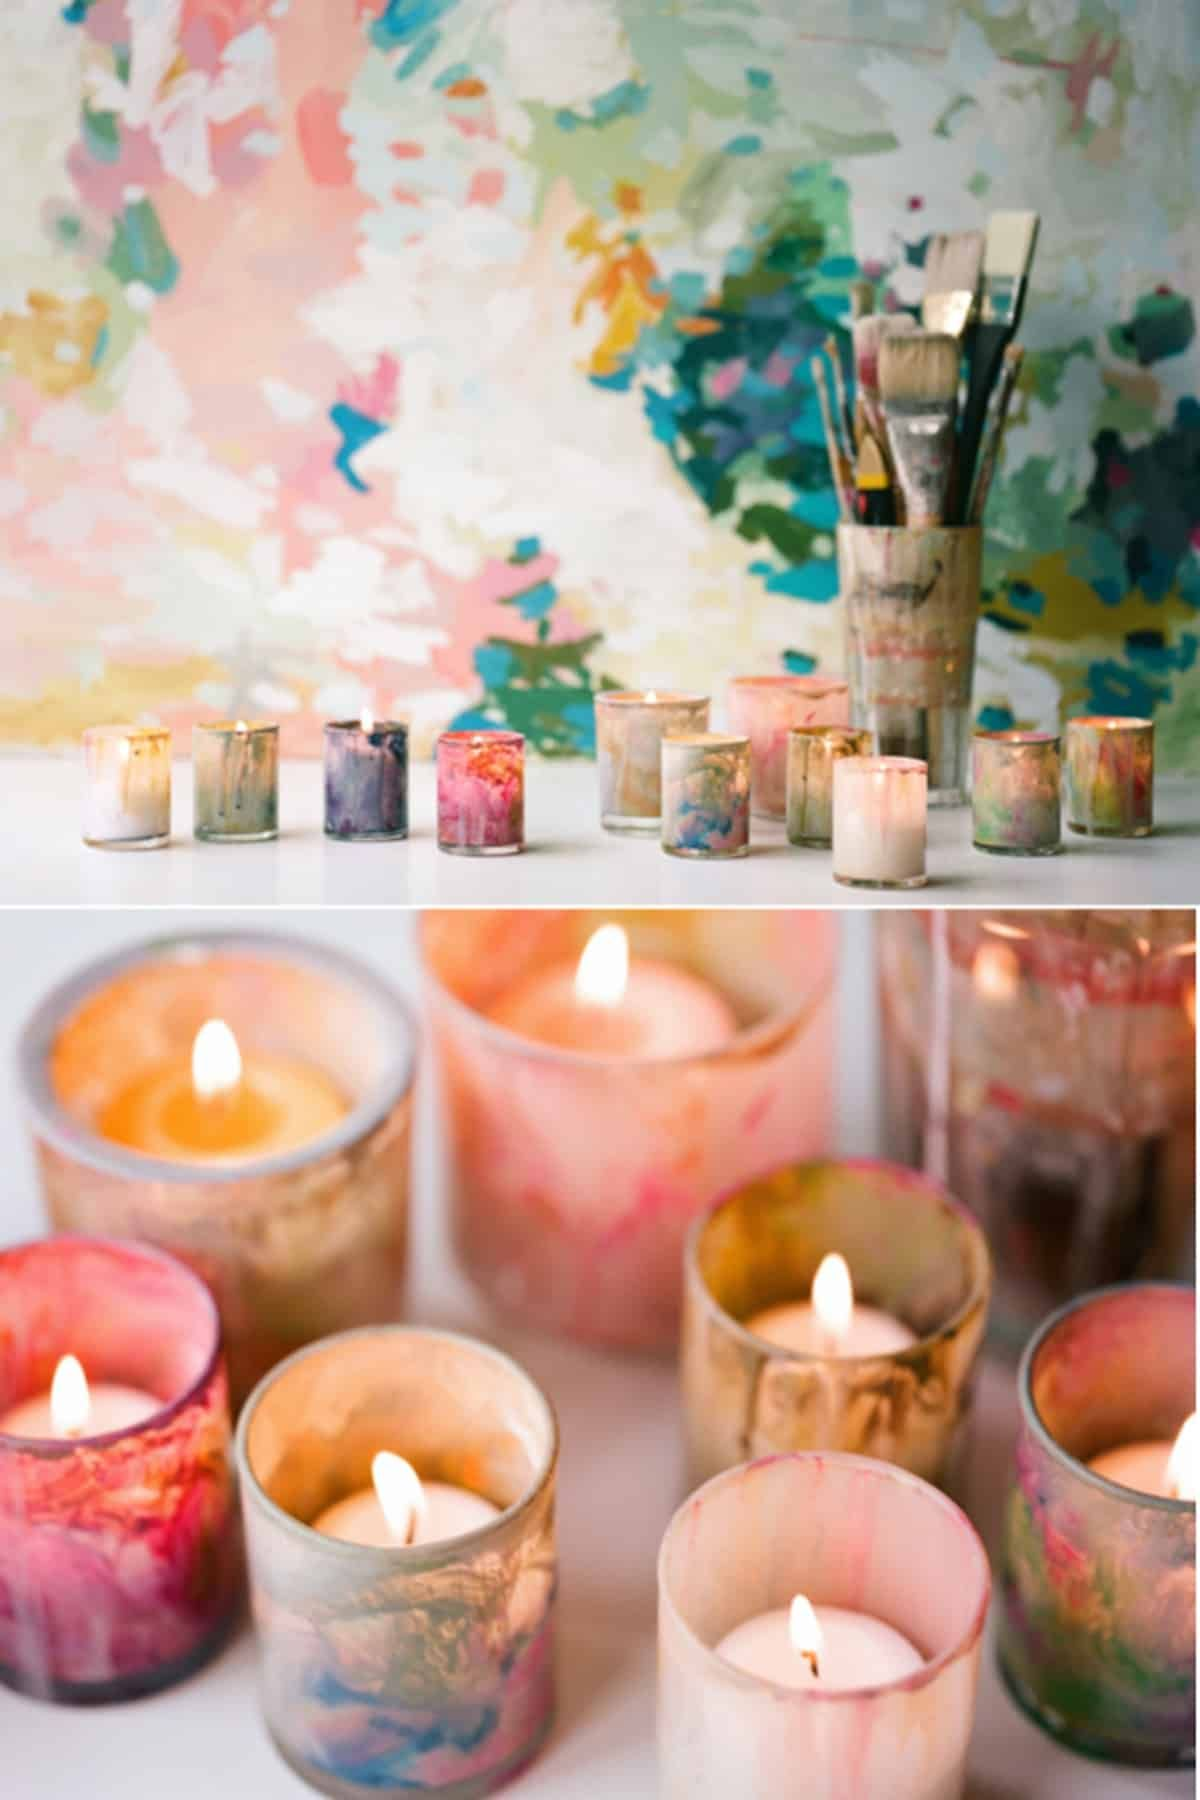 The Colorful Votive Candle Holder Candleholders Diycandleholders Candleholderdecor Diy Candle Holders Diy Candles Candle Holders